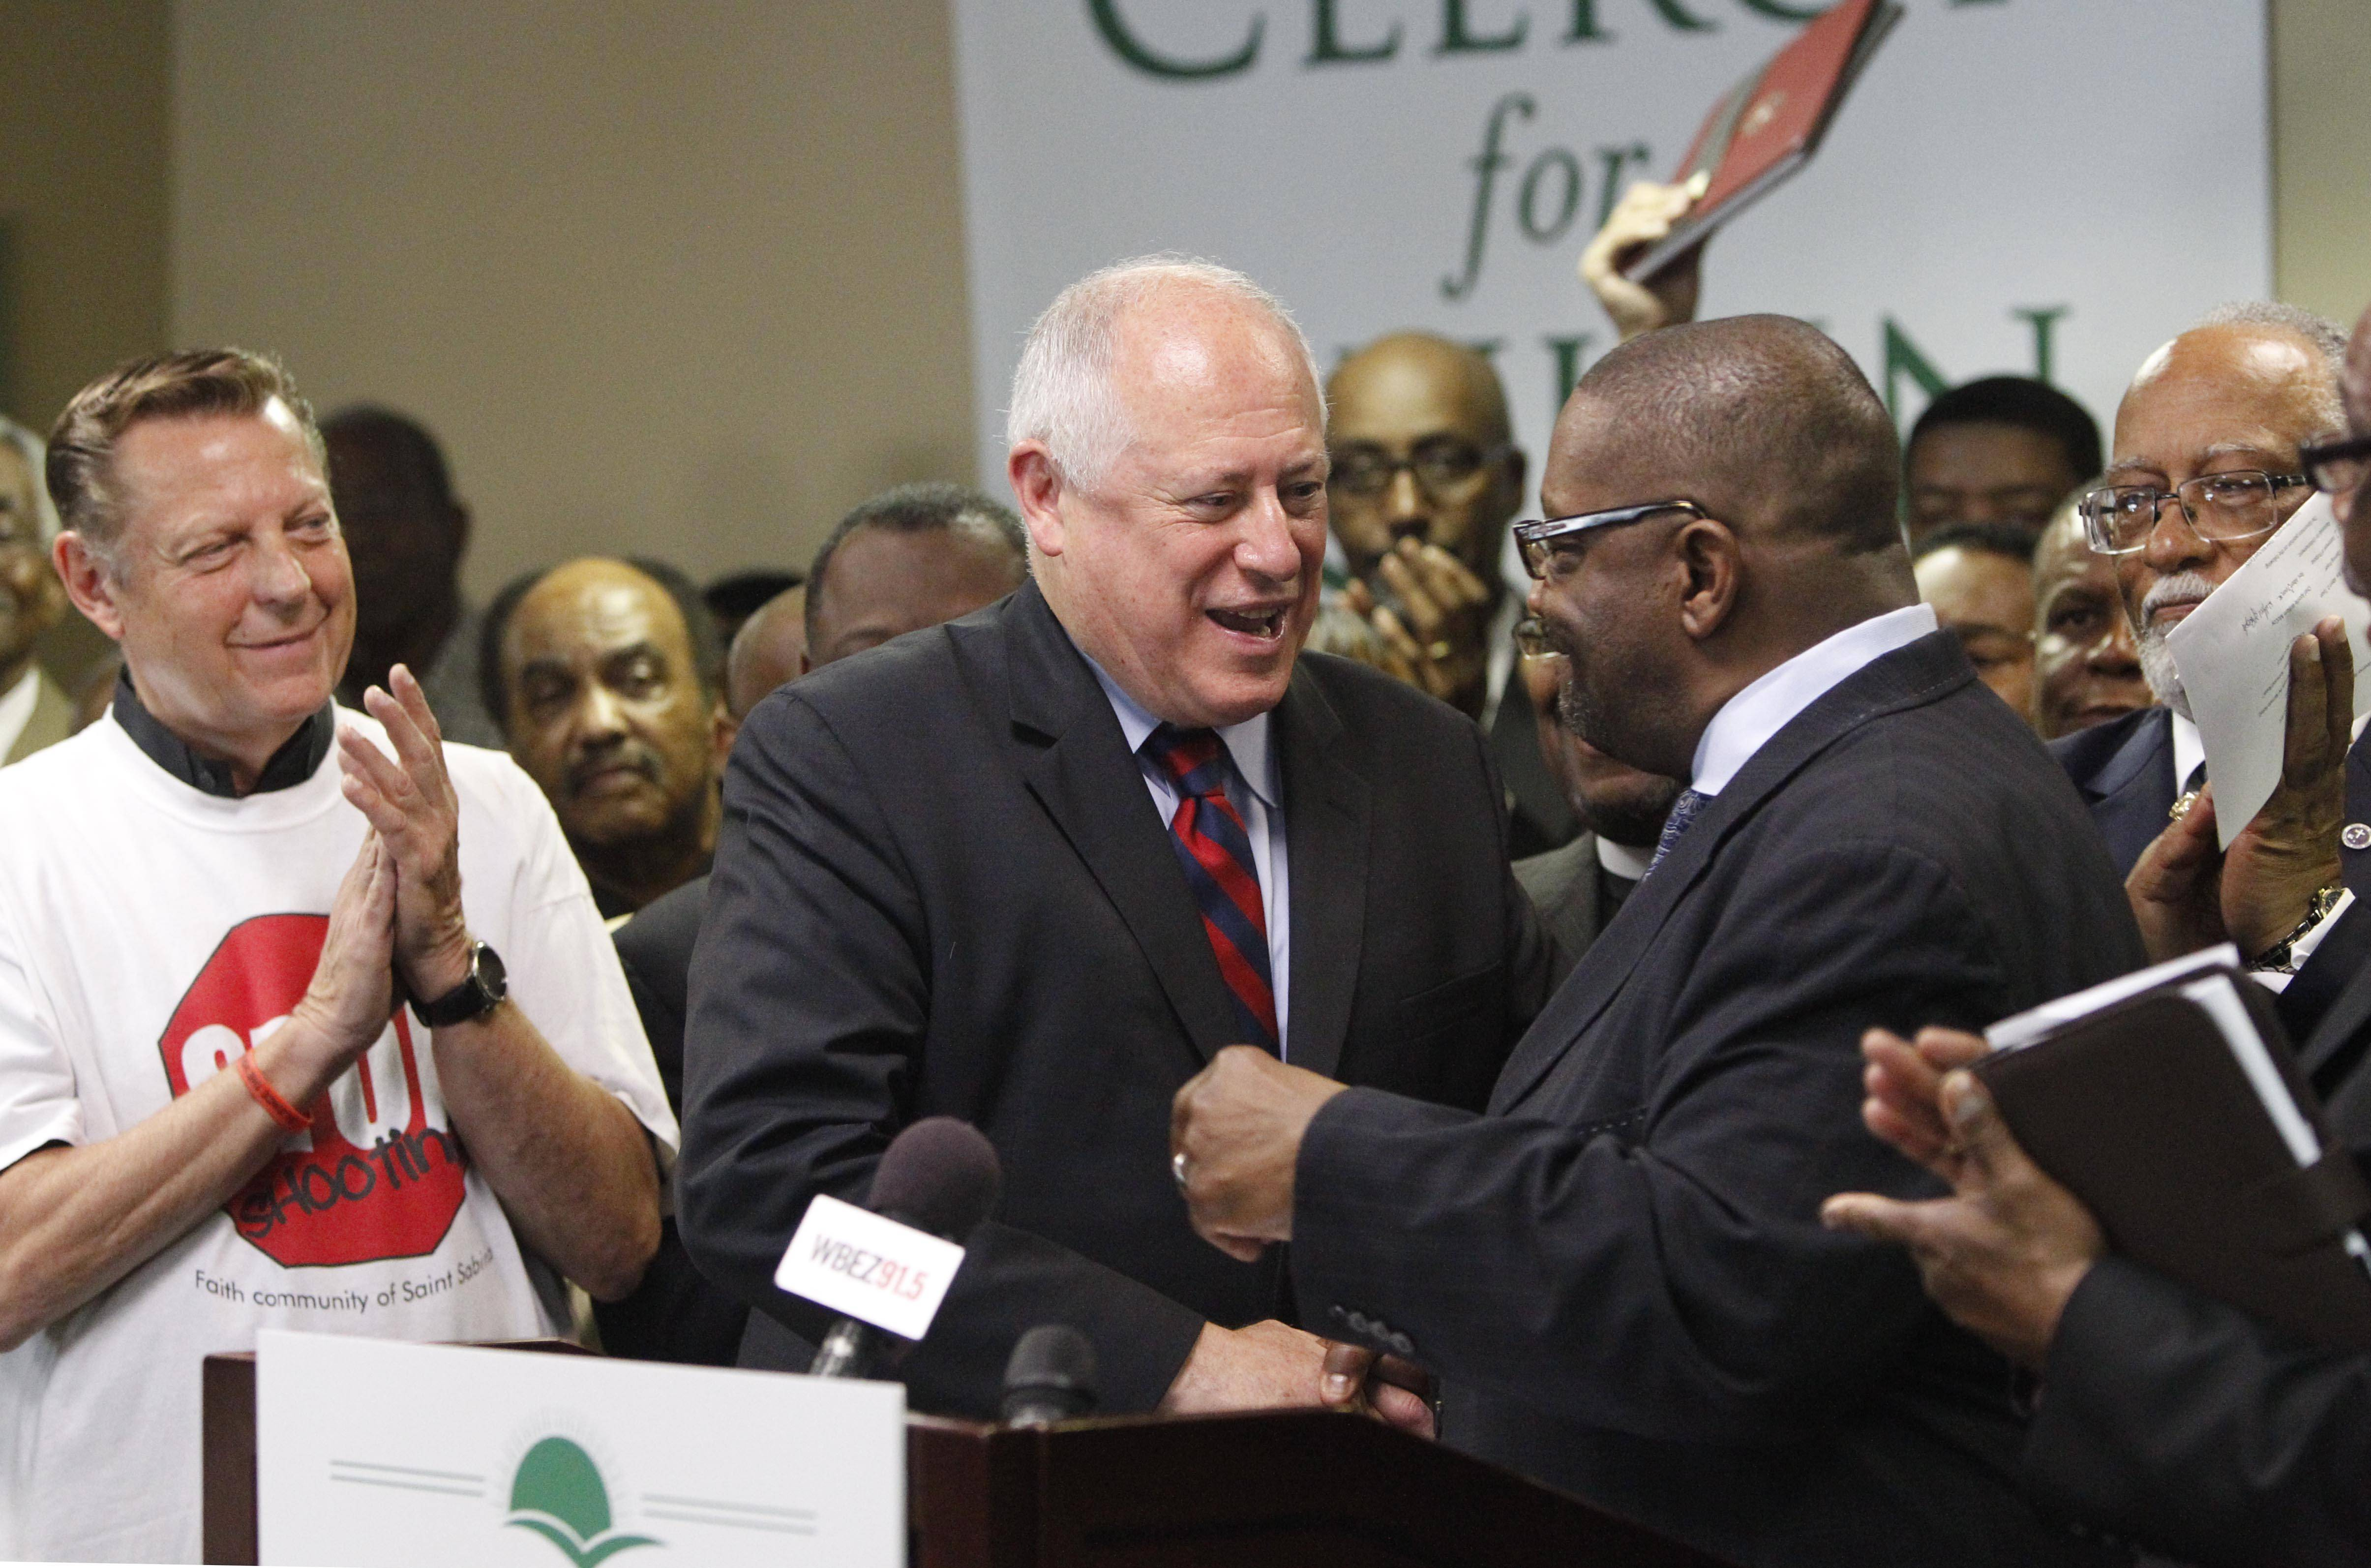 Quinn wins endorsements from clergy